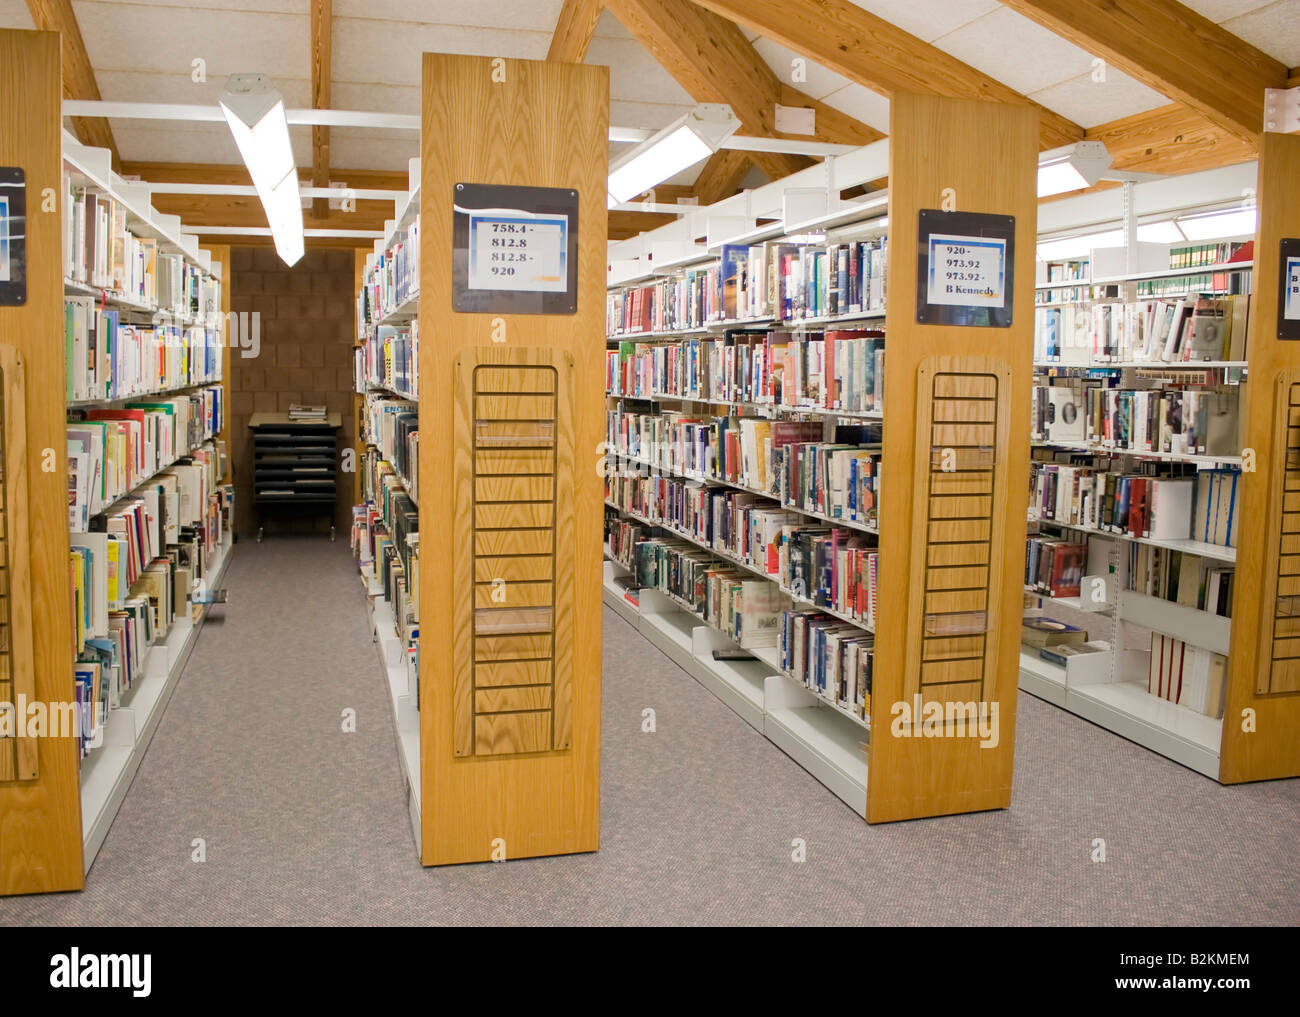 The Aisles In A Public Library With Shelves Full Of Books Stock